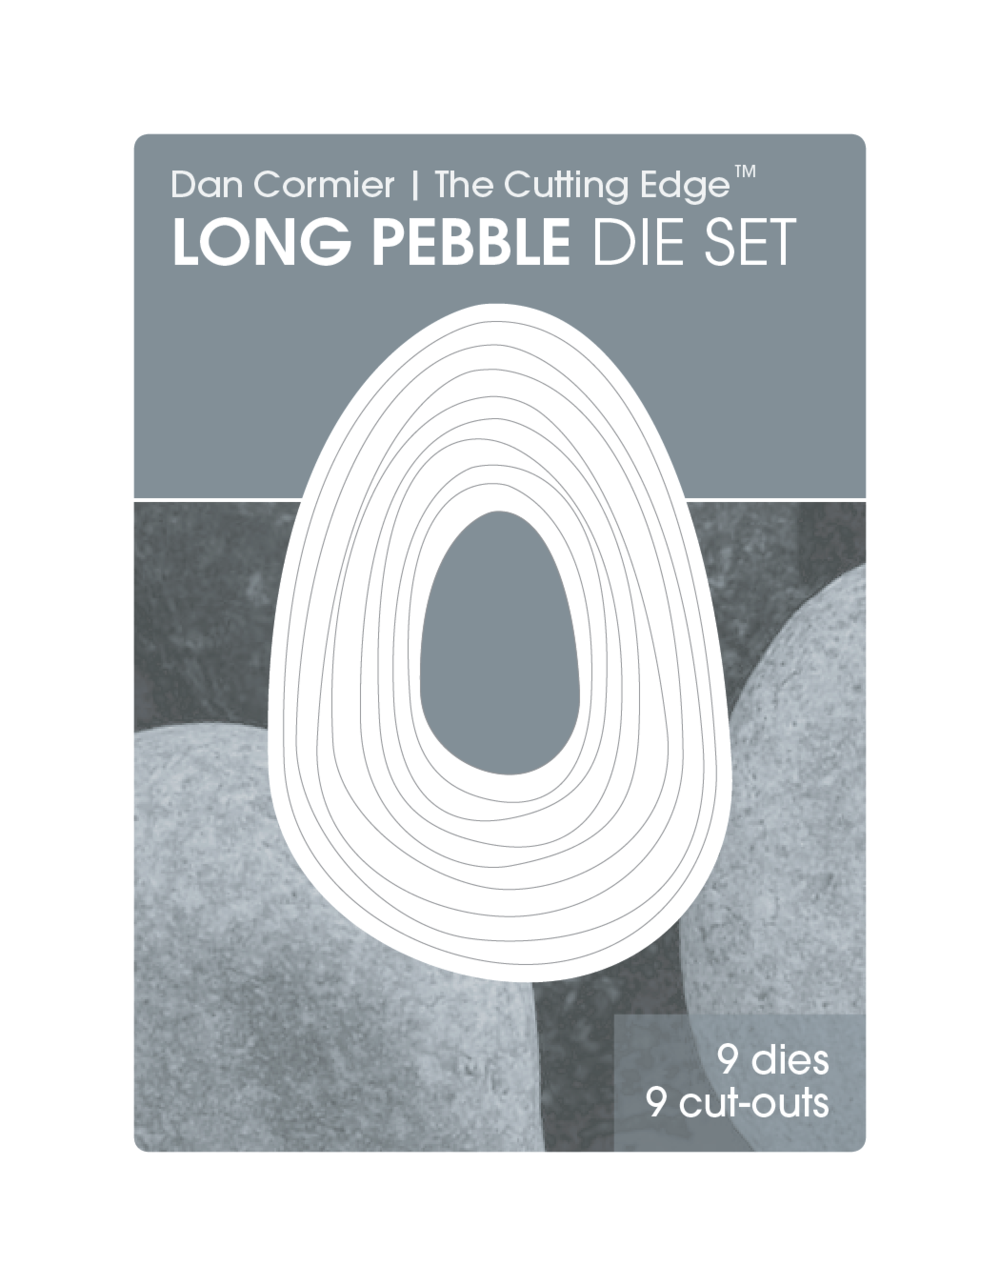 LONG PEBBLE